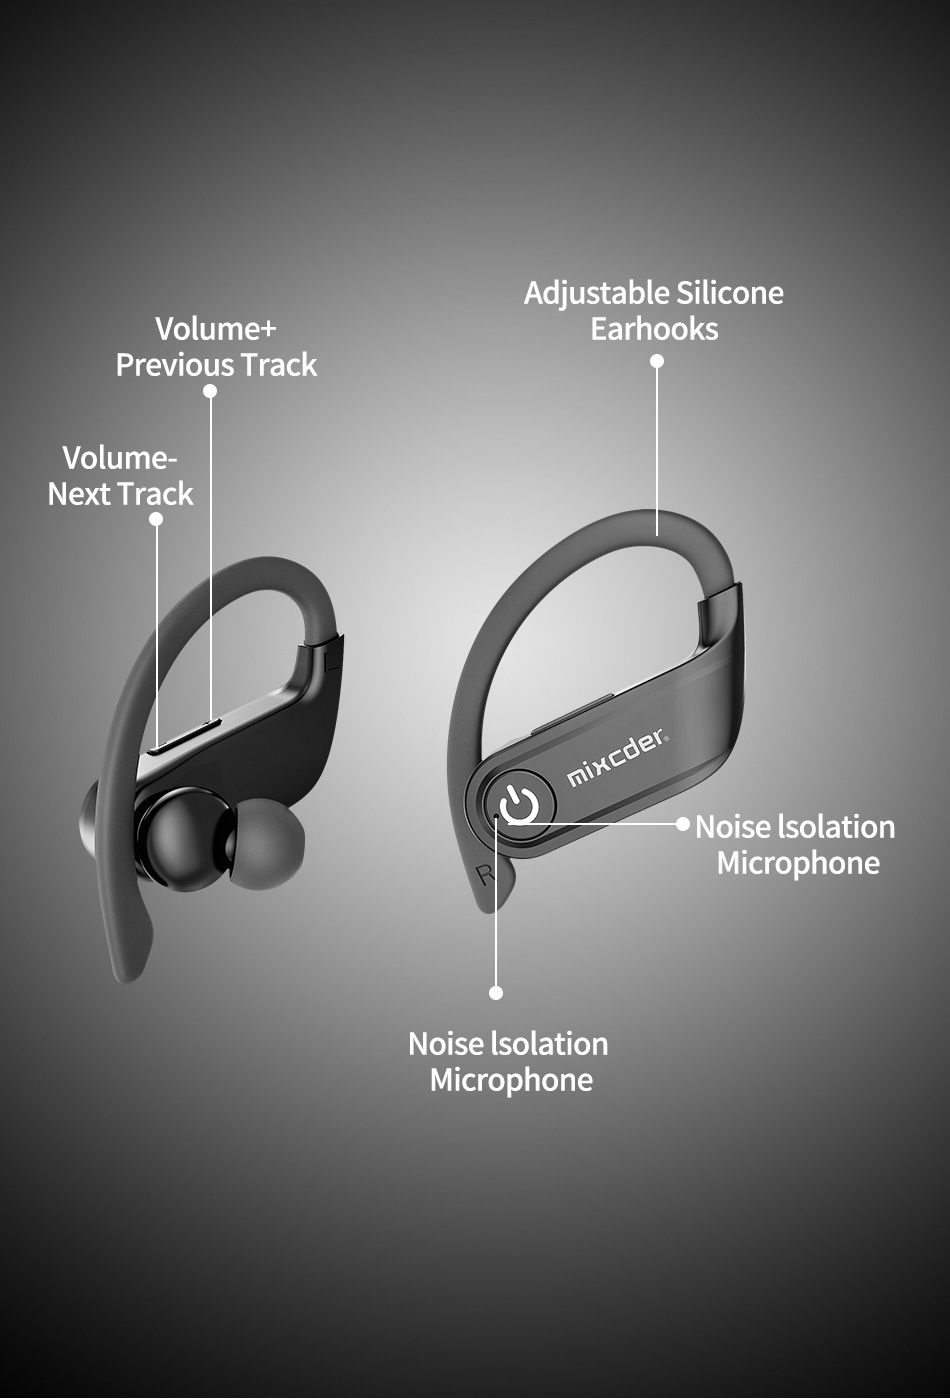 Mixcder T2 TWS Earphone Earhook Bluetooth5.0 100mA Wireless Inear Headphone Waterproof Sport Earbuds With Led Display Microphone